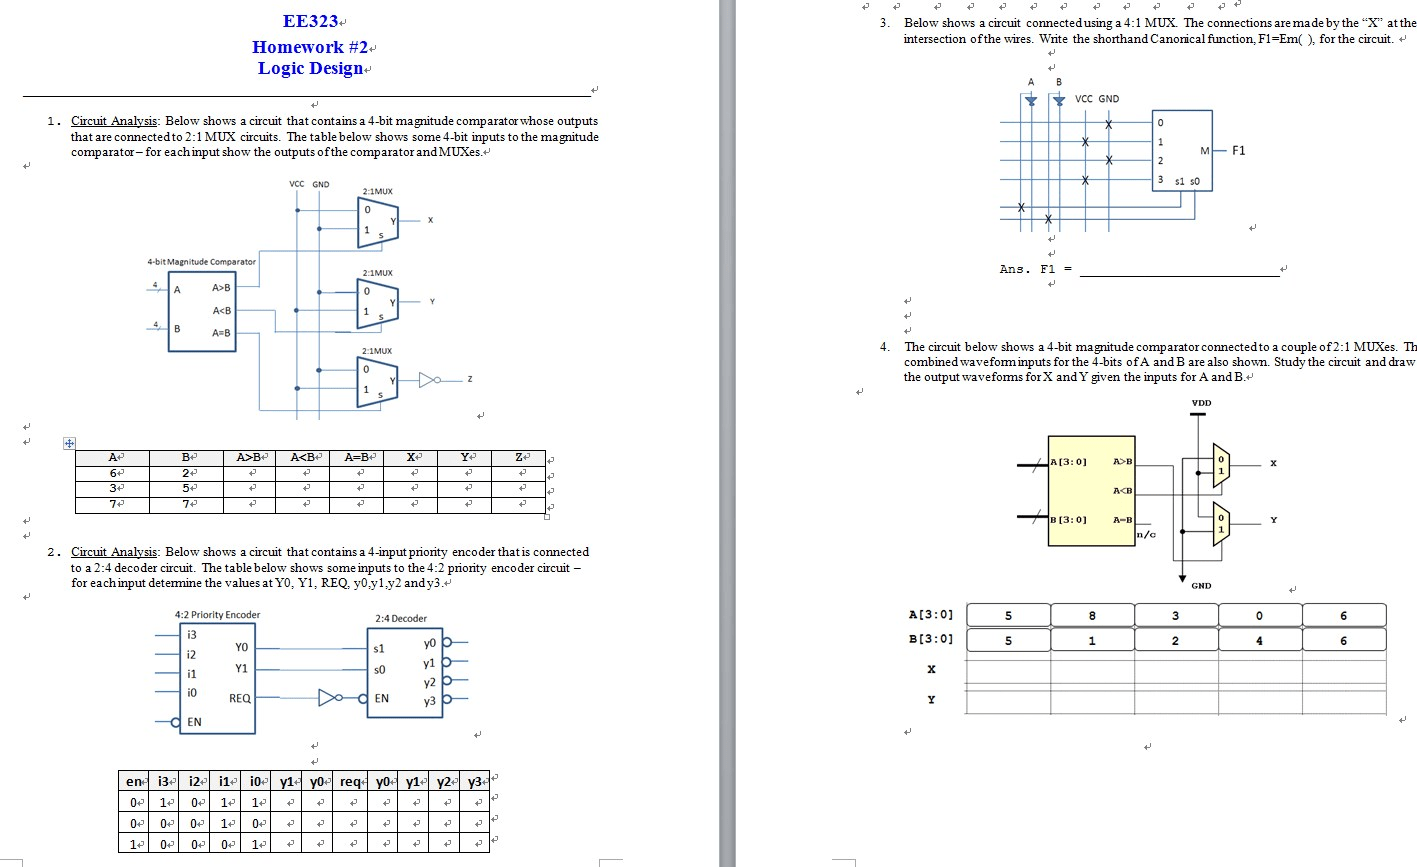 hight resolution of circuit analysis below shows a circuit that conta